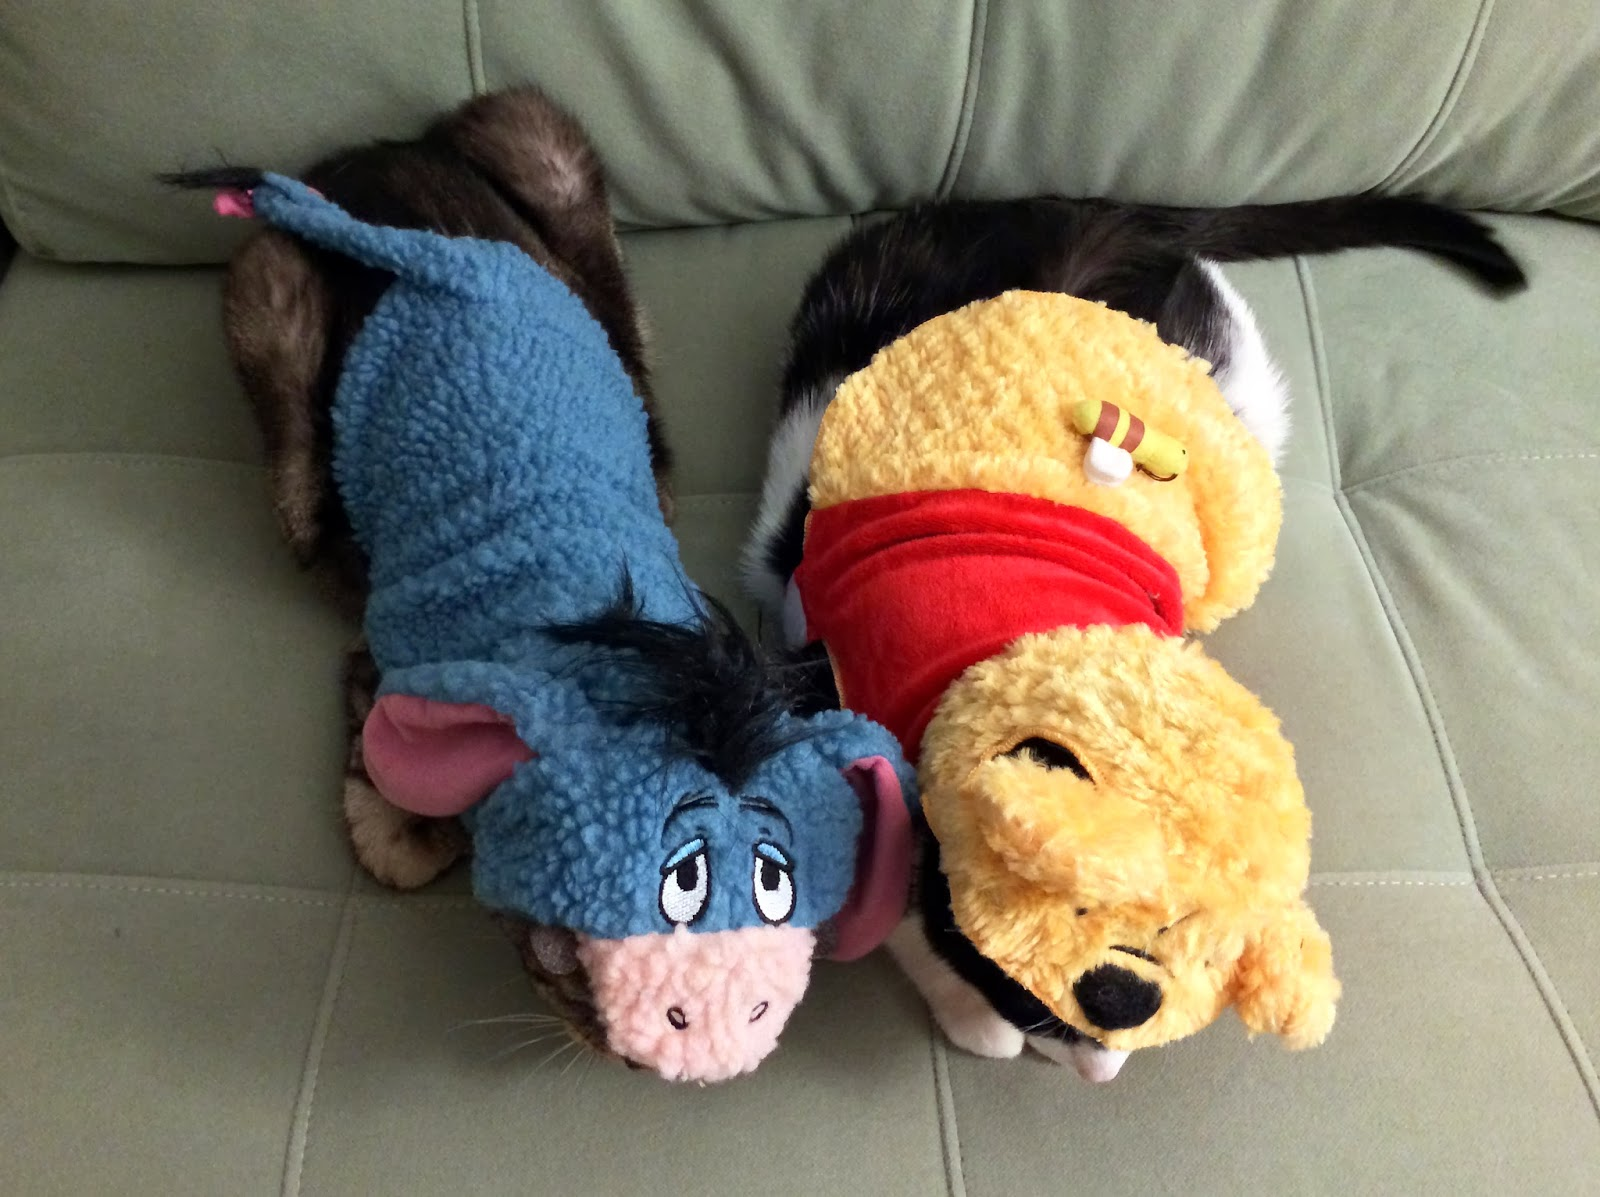 your daily cute: pimp and moo's halloween costumes - eeyore and pooh!